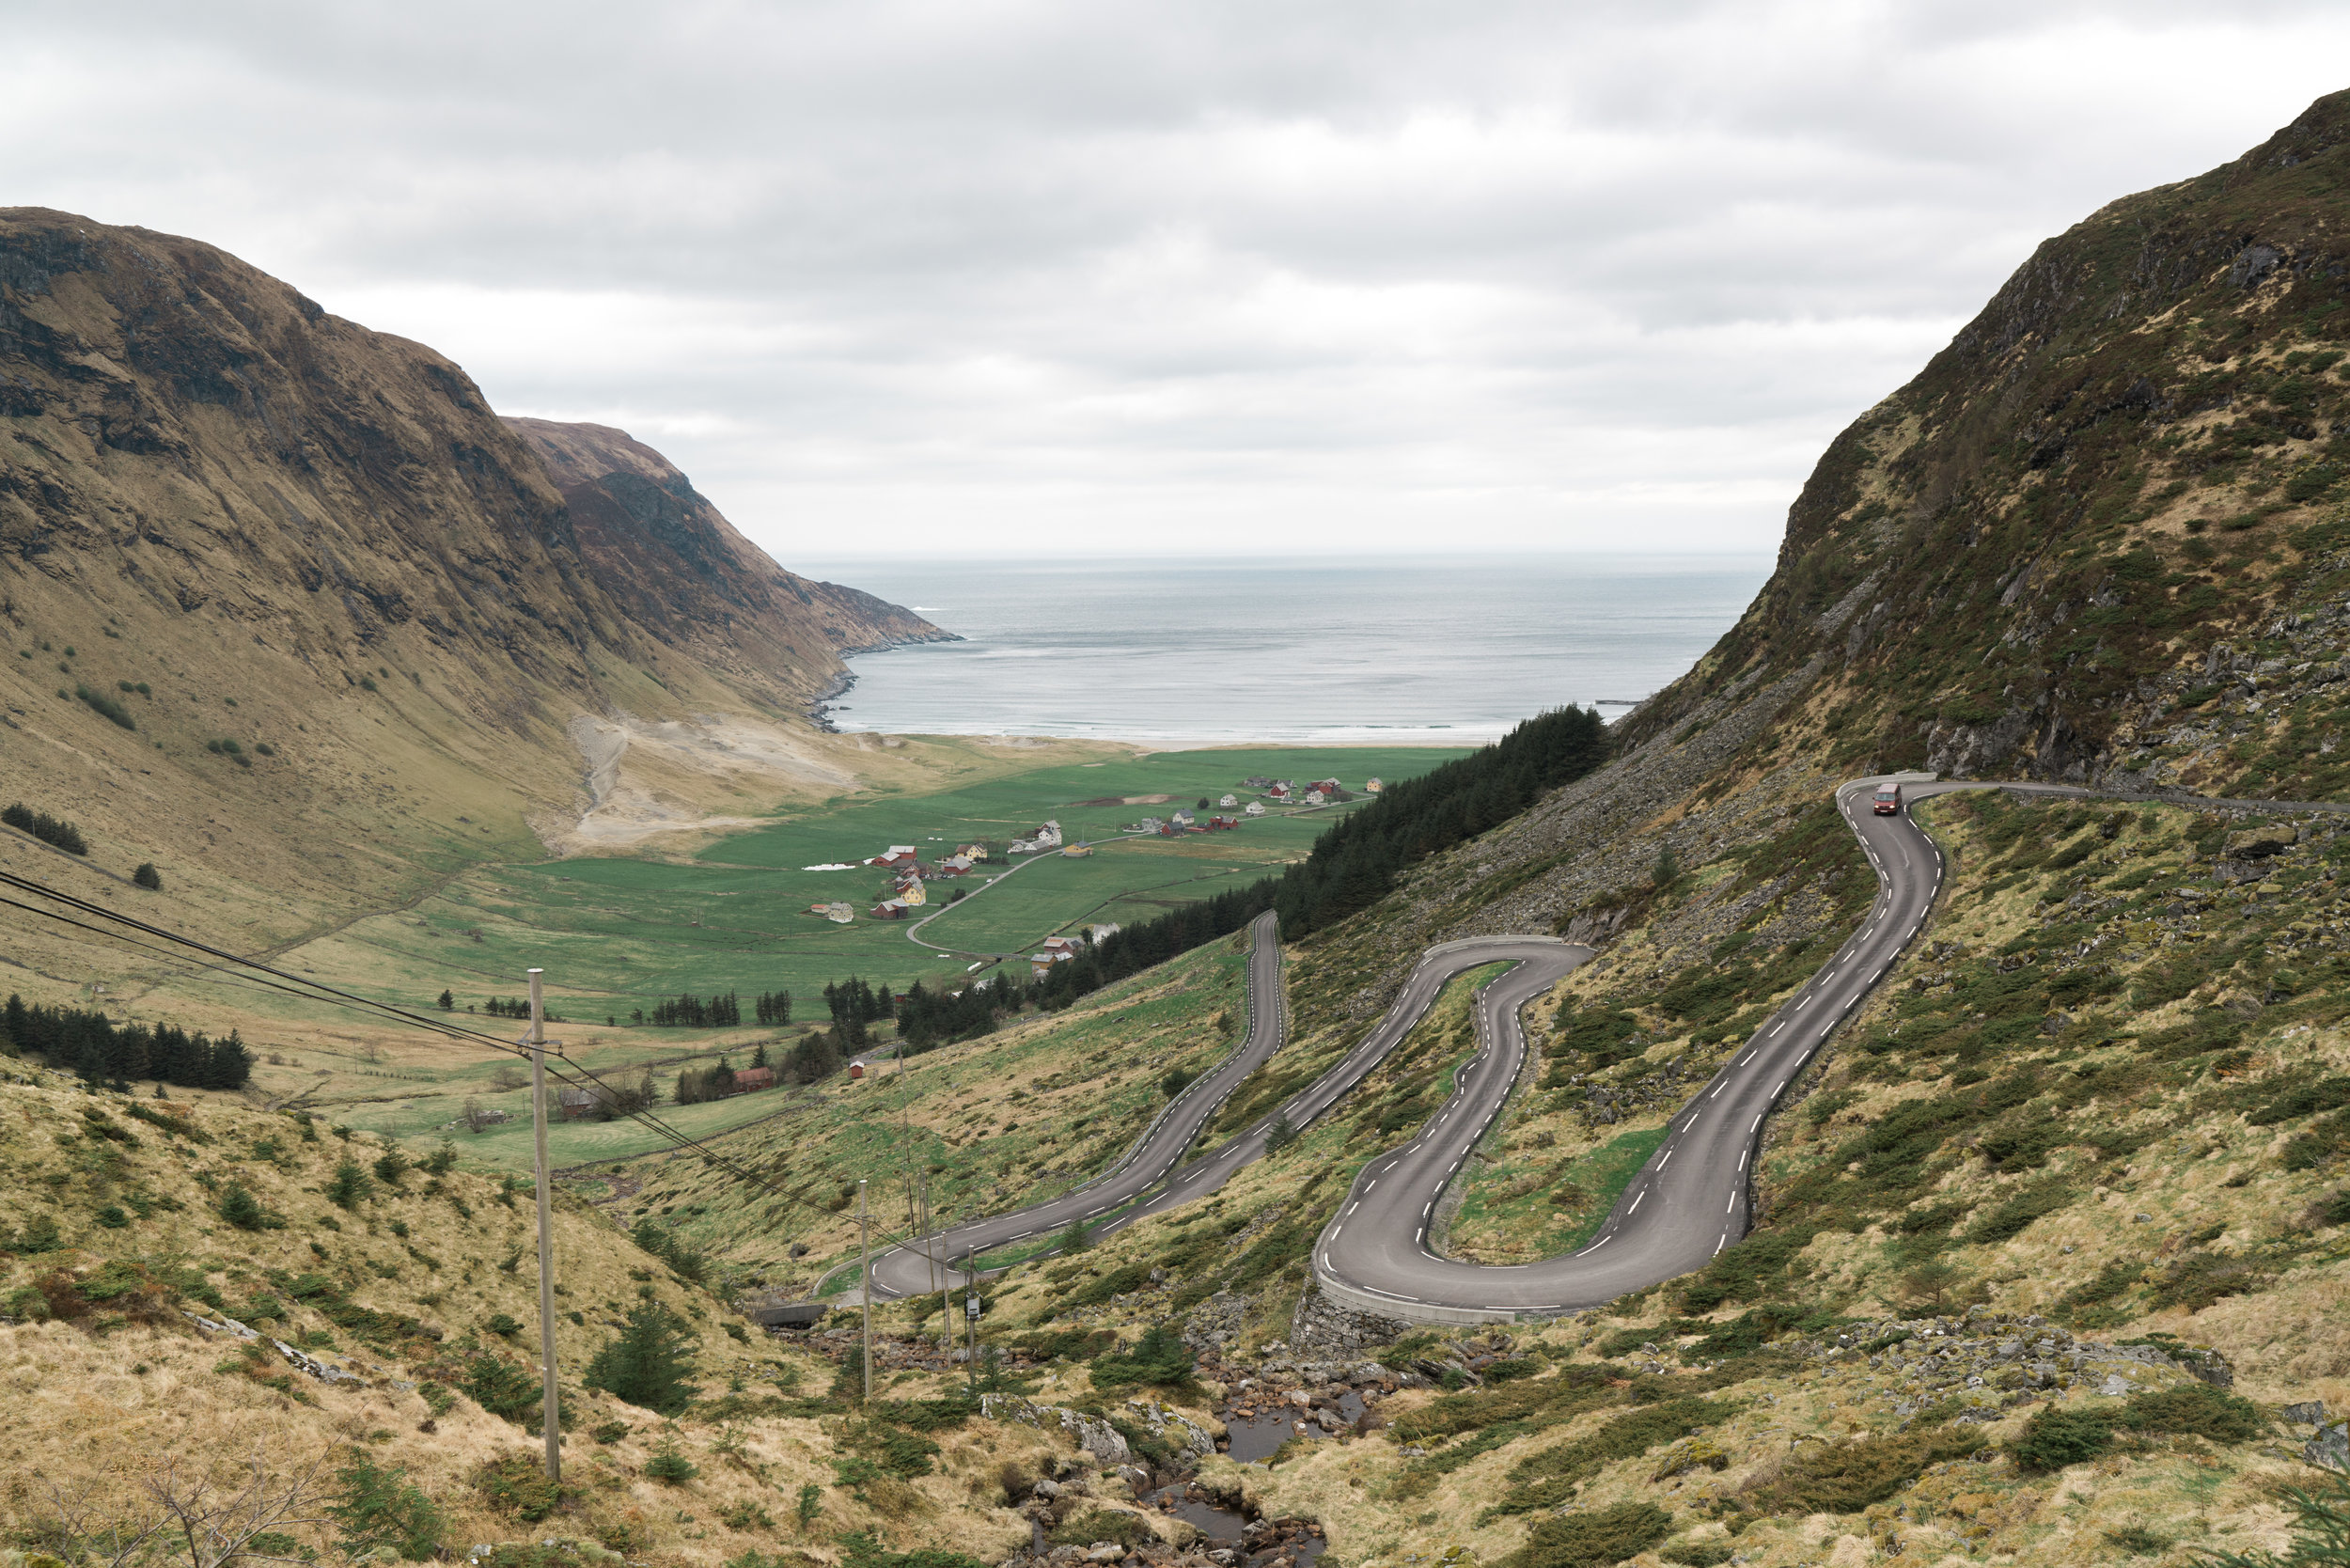 The winding road into Hoddevik. Epic!